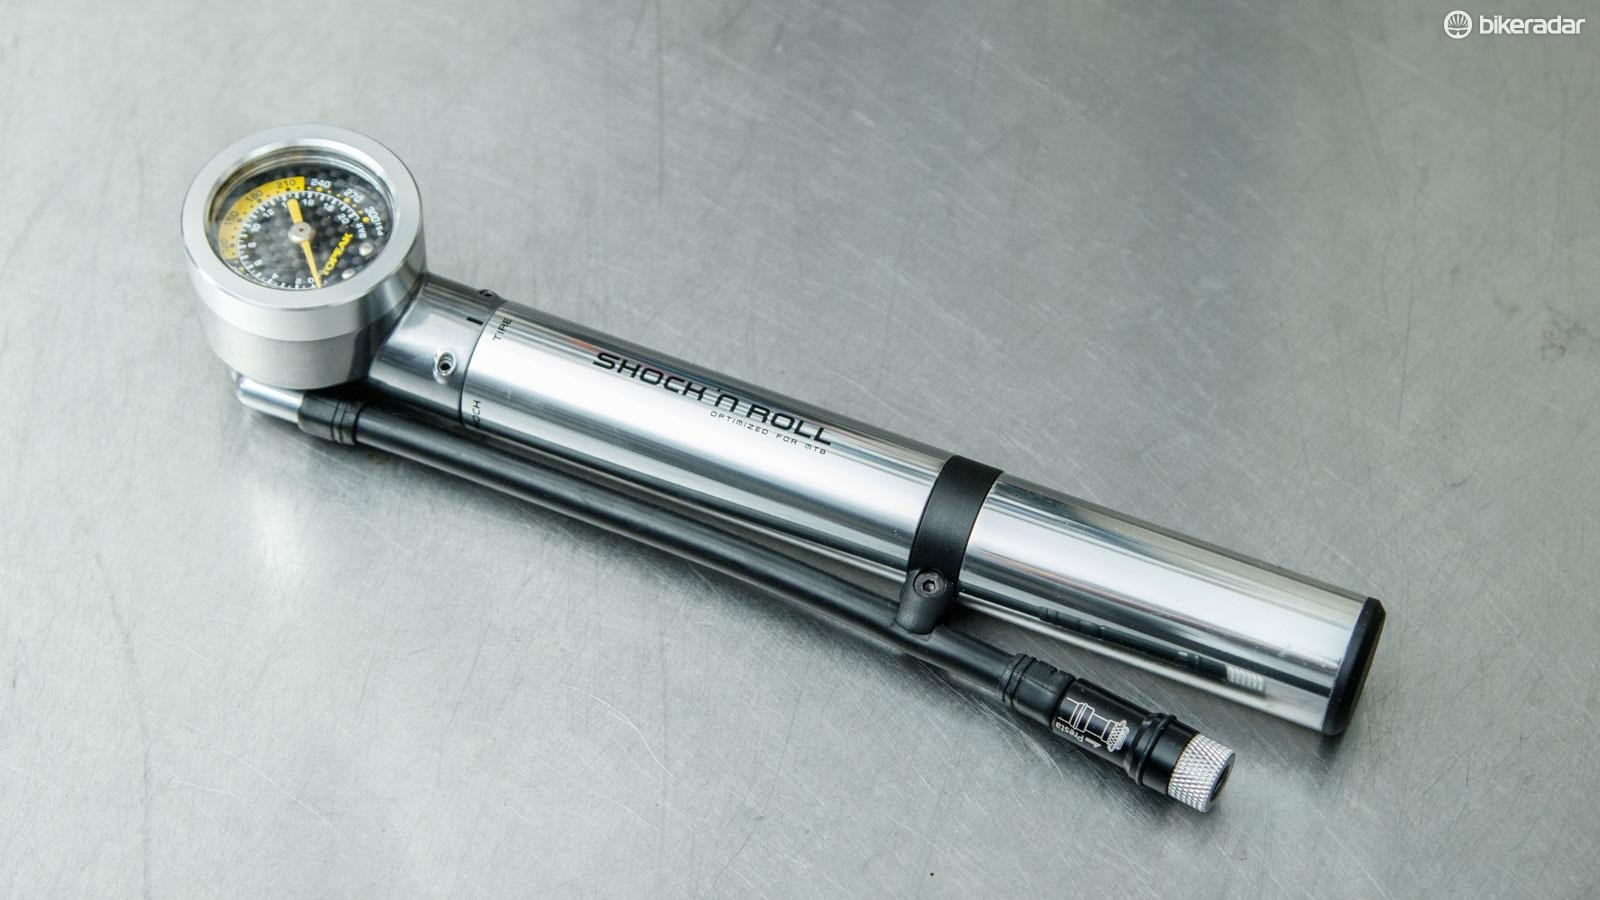 The Topeak Shock 'n Roll pump has remained unchanged for many years and continues to be a rare breed in that it combines shock and tyre pumping